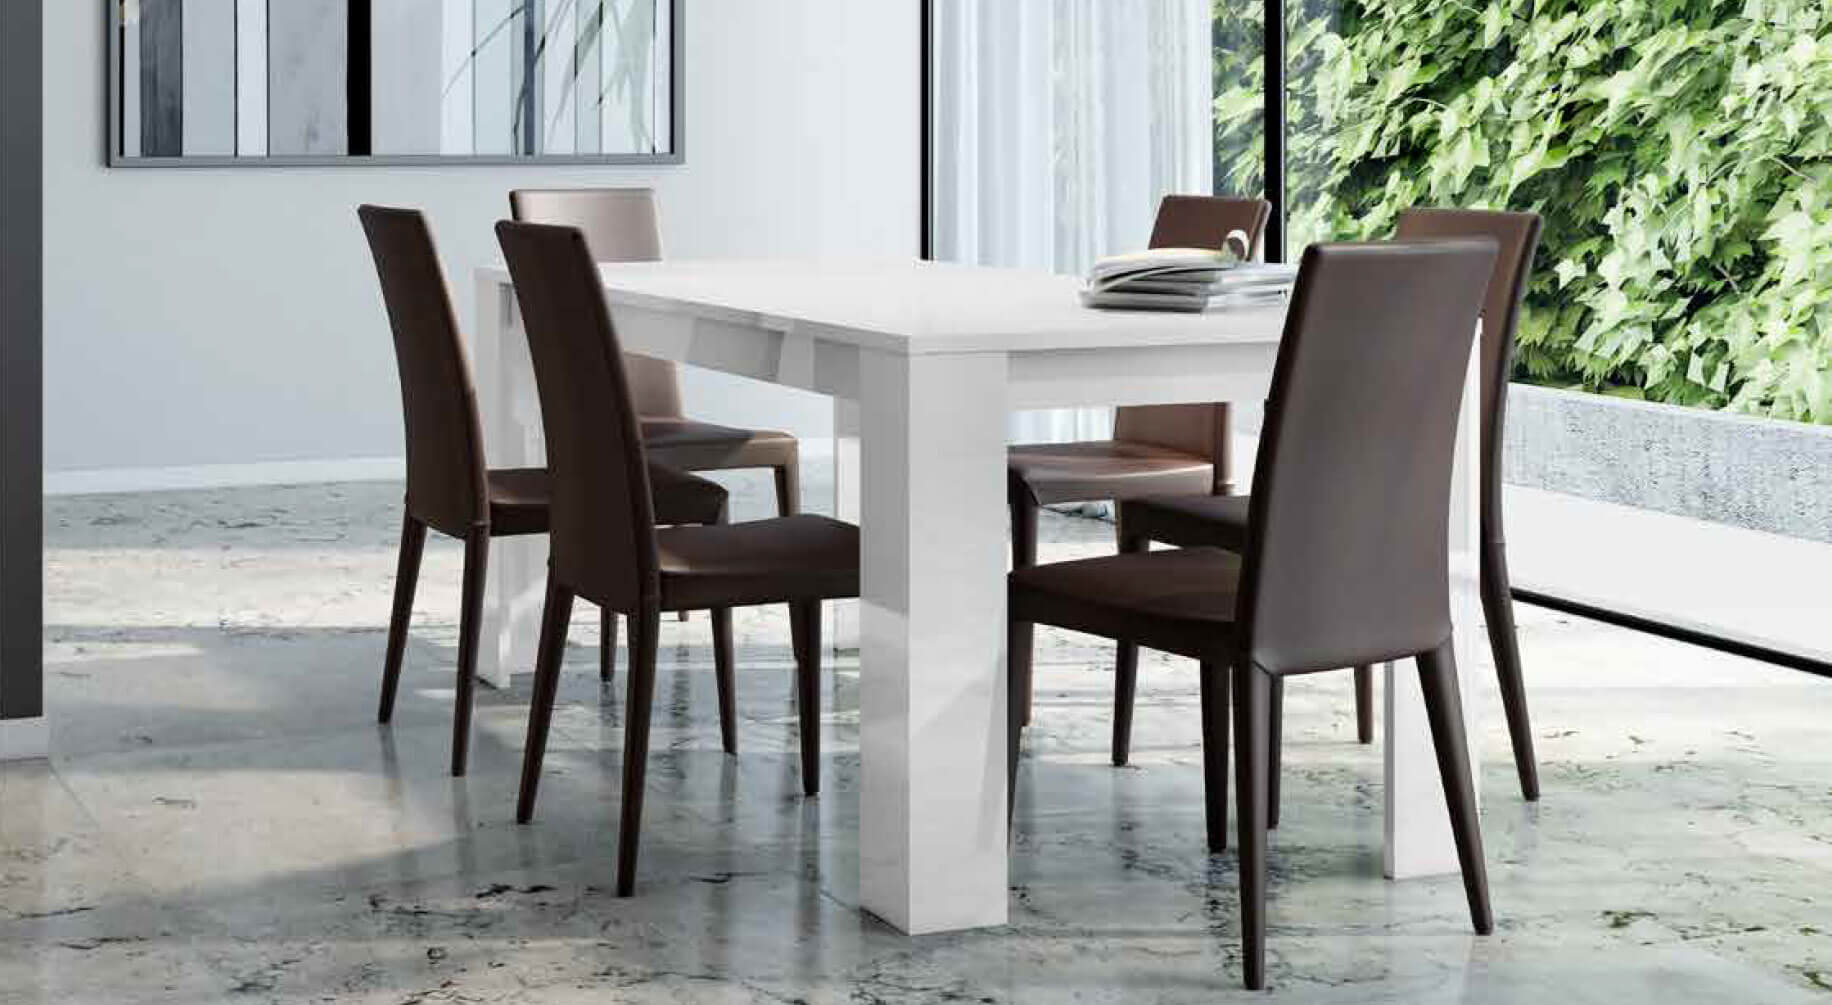 Table blanc laqu 202m06bl ideal mobili for Table extensible alger